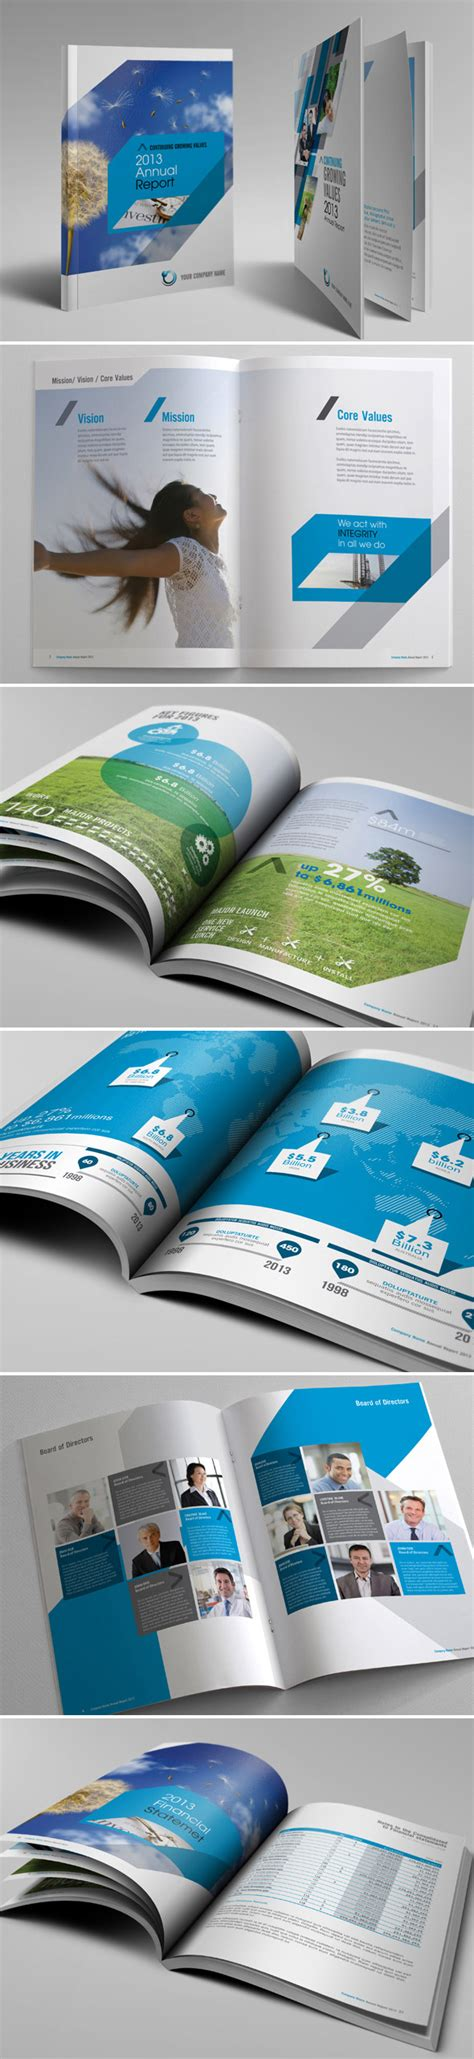 design inspiration reports a showcase of annual report brochure designs to check out